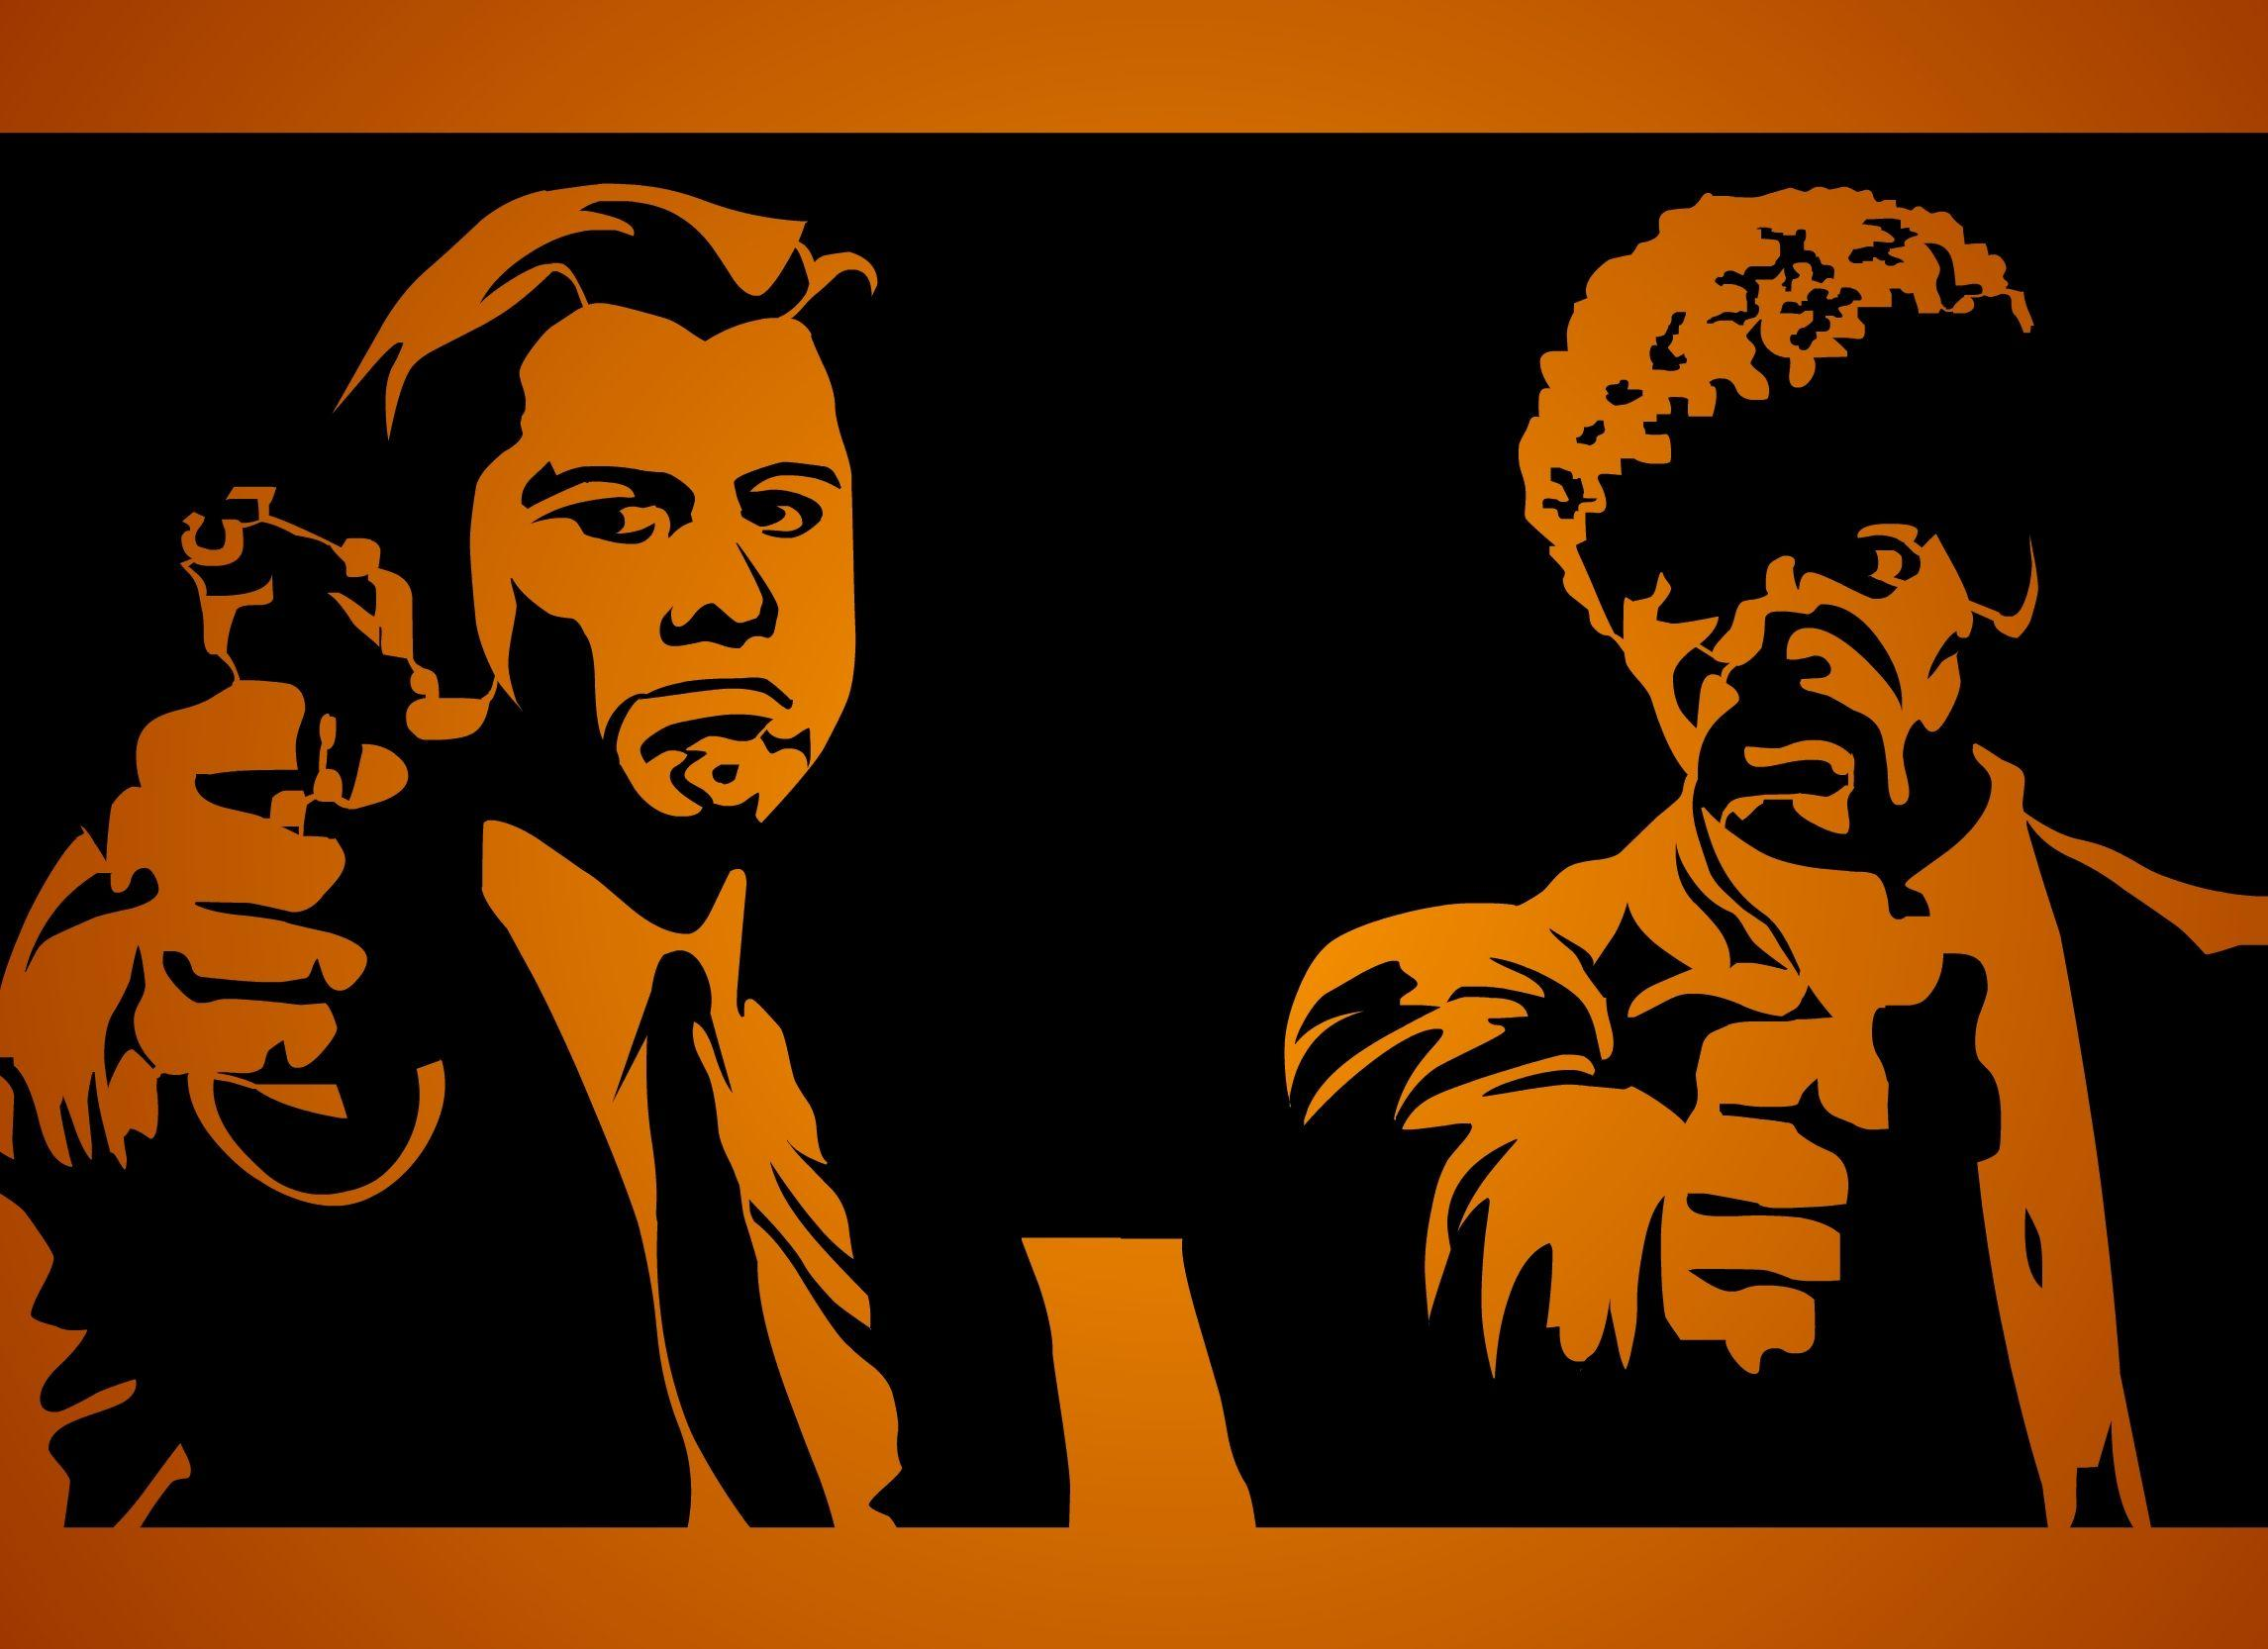 Pulp Fiction Samuel L Jackson John Travolta Hd Wallpaper